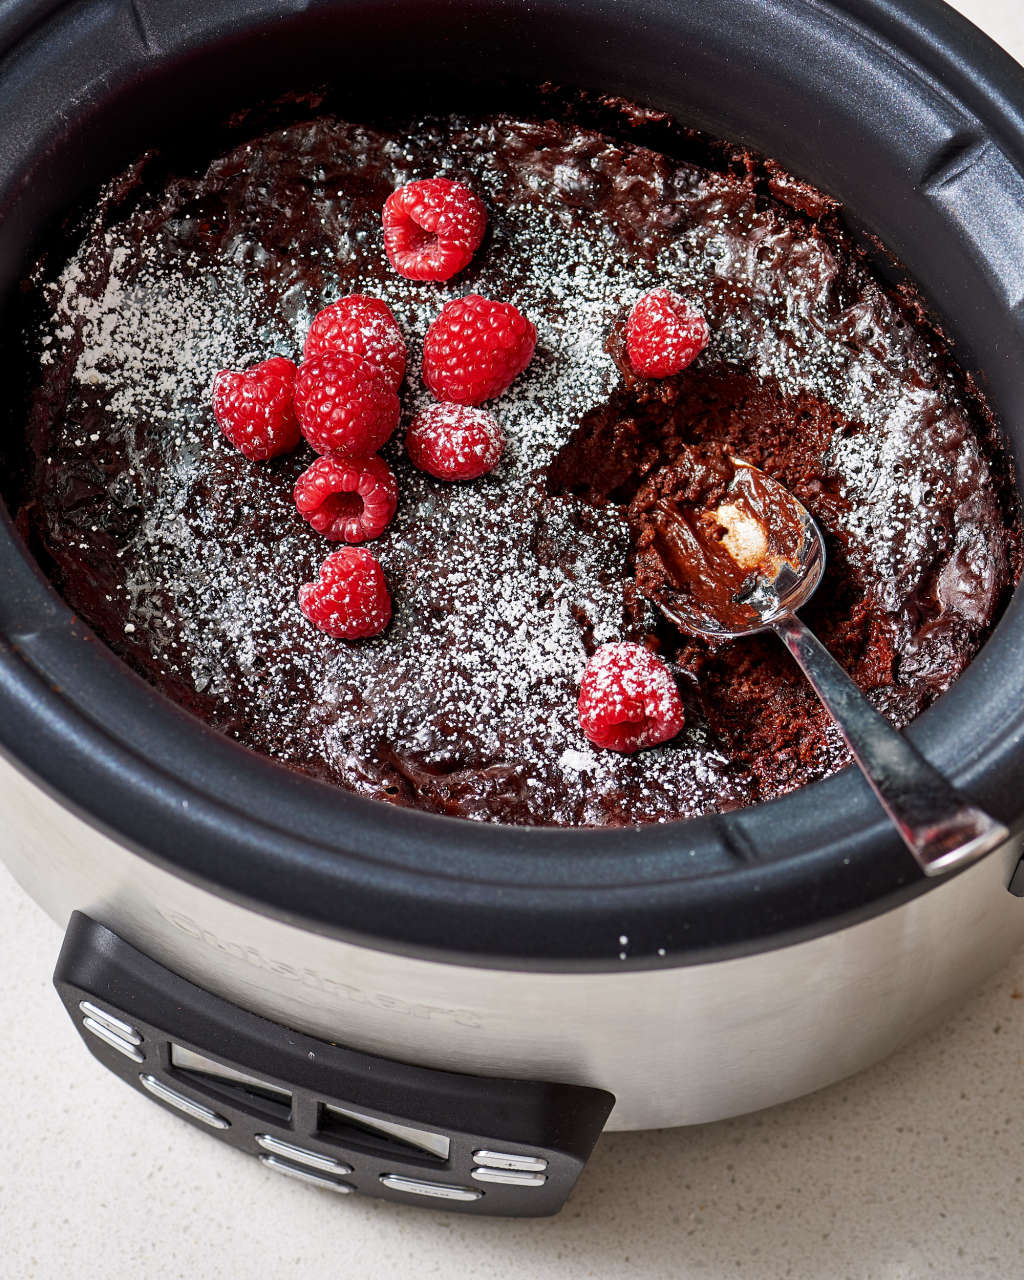 The Best Chocolate Lava Cake Comes from the Slow Cooker